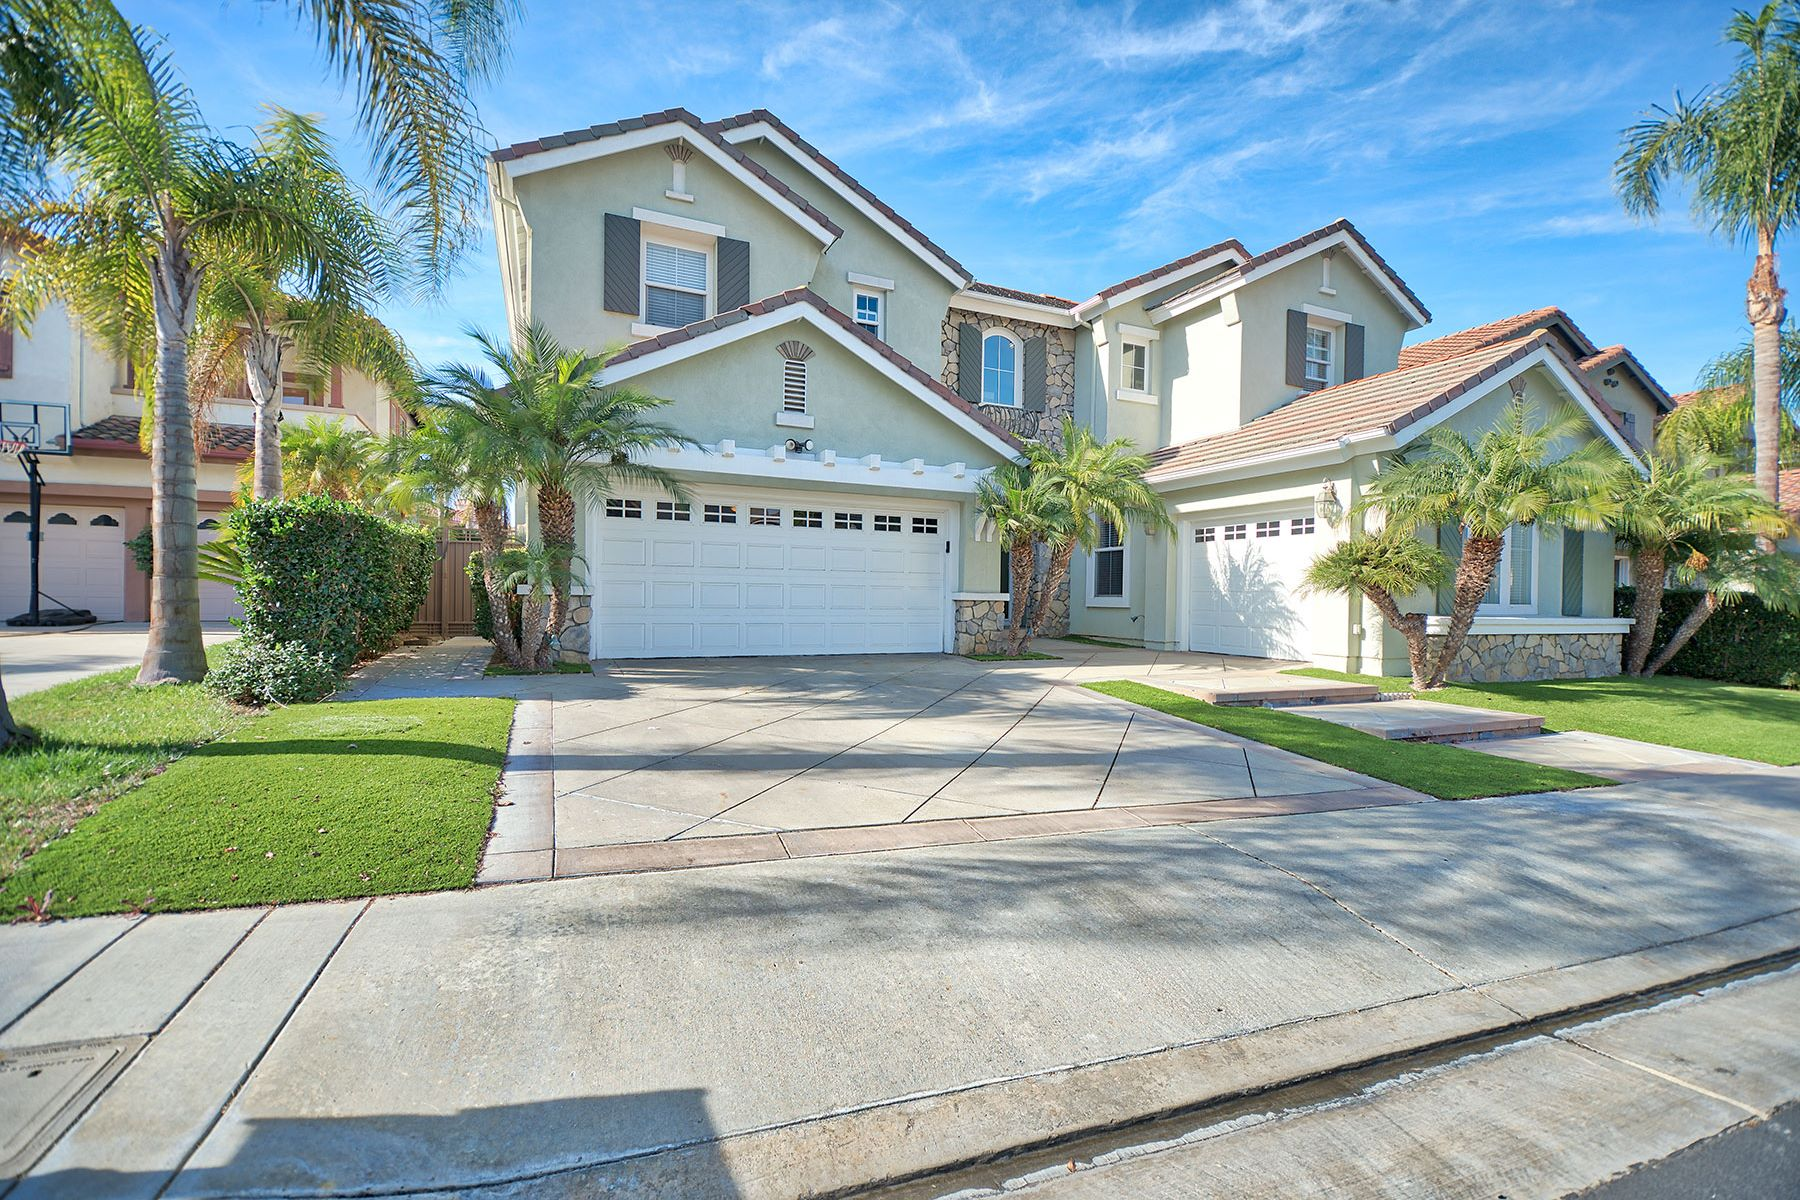 Single Family Home for Sale at 19621 Dearborne Huntington Beach, California, 92648 United States